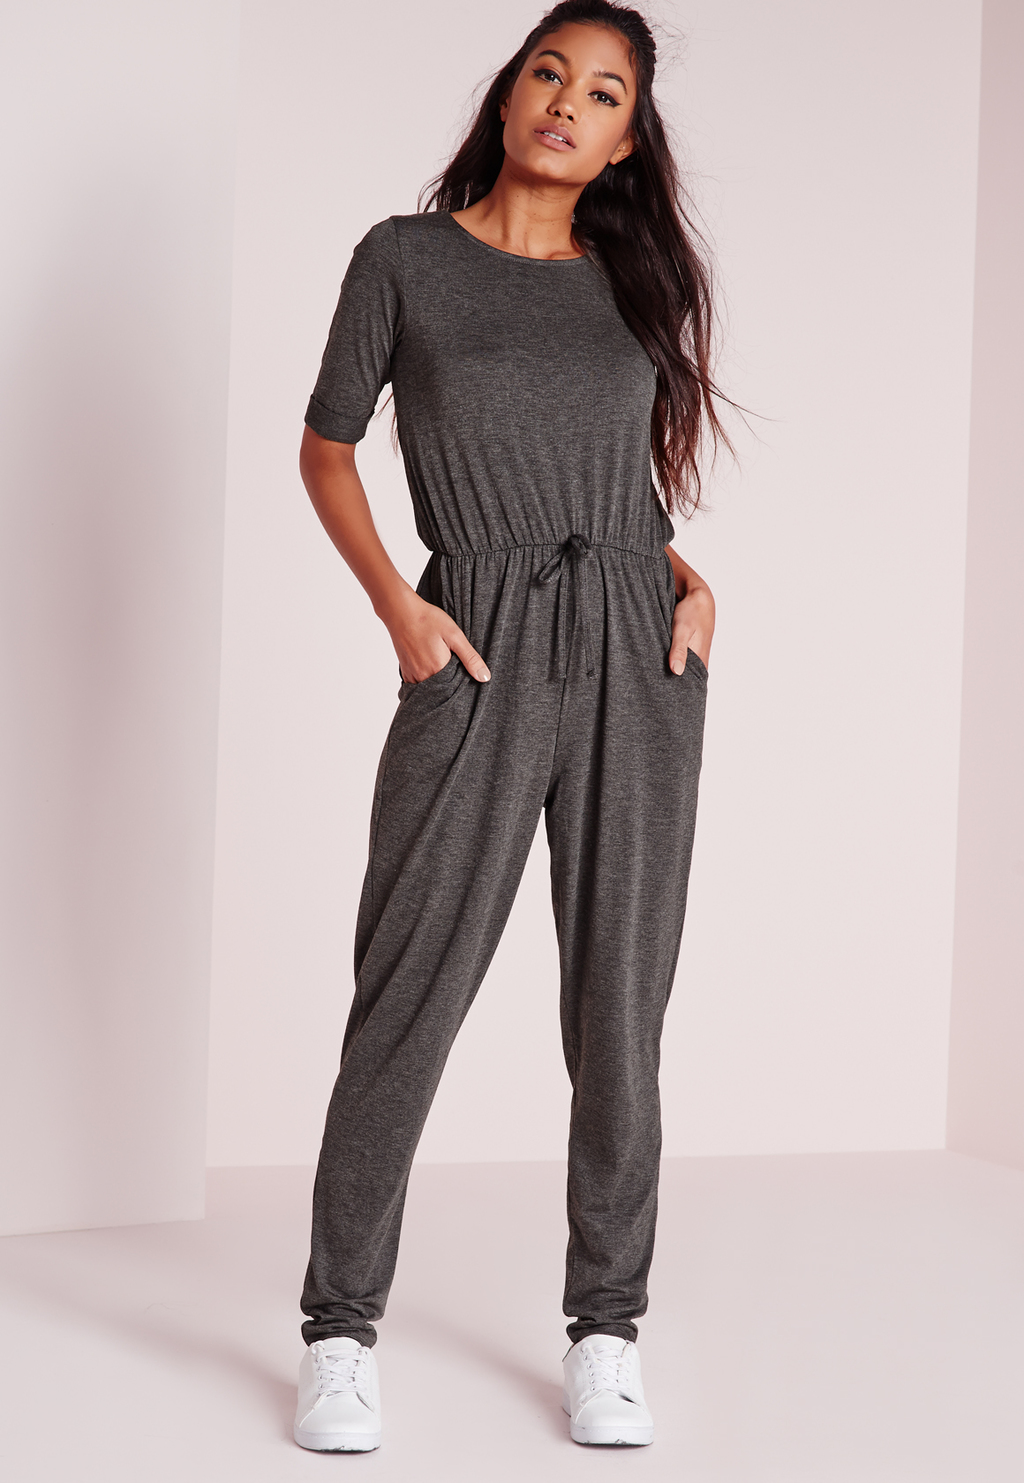 Drawstring Jumpsuit Grey, Grey - length: standard; pattern: plain; waist detail: belted waist/tie at waist/drawstring; predominant colour: mid grey; occasions: casual; fit: body skimming; fibres: viscose/rayon - stretch; neckline: crew; sleeve length: short sleeve; sleeve style: standard; style: jumpsuit; pattern type: fabric; texture group: jersey - stretchy/drapey; season: s/s 2016; wardrobe: highlight